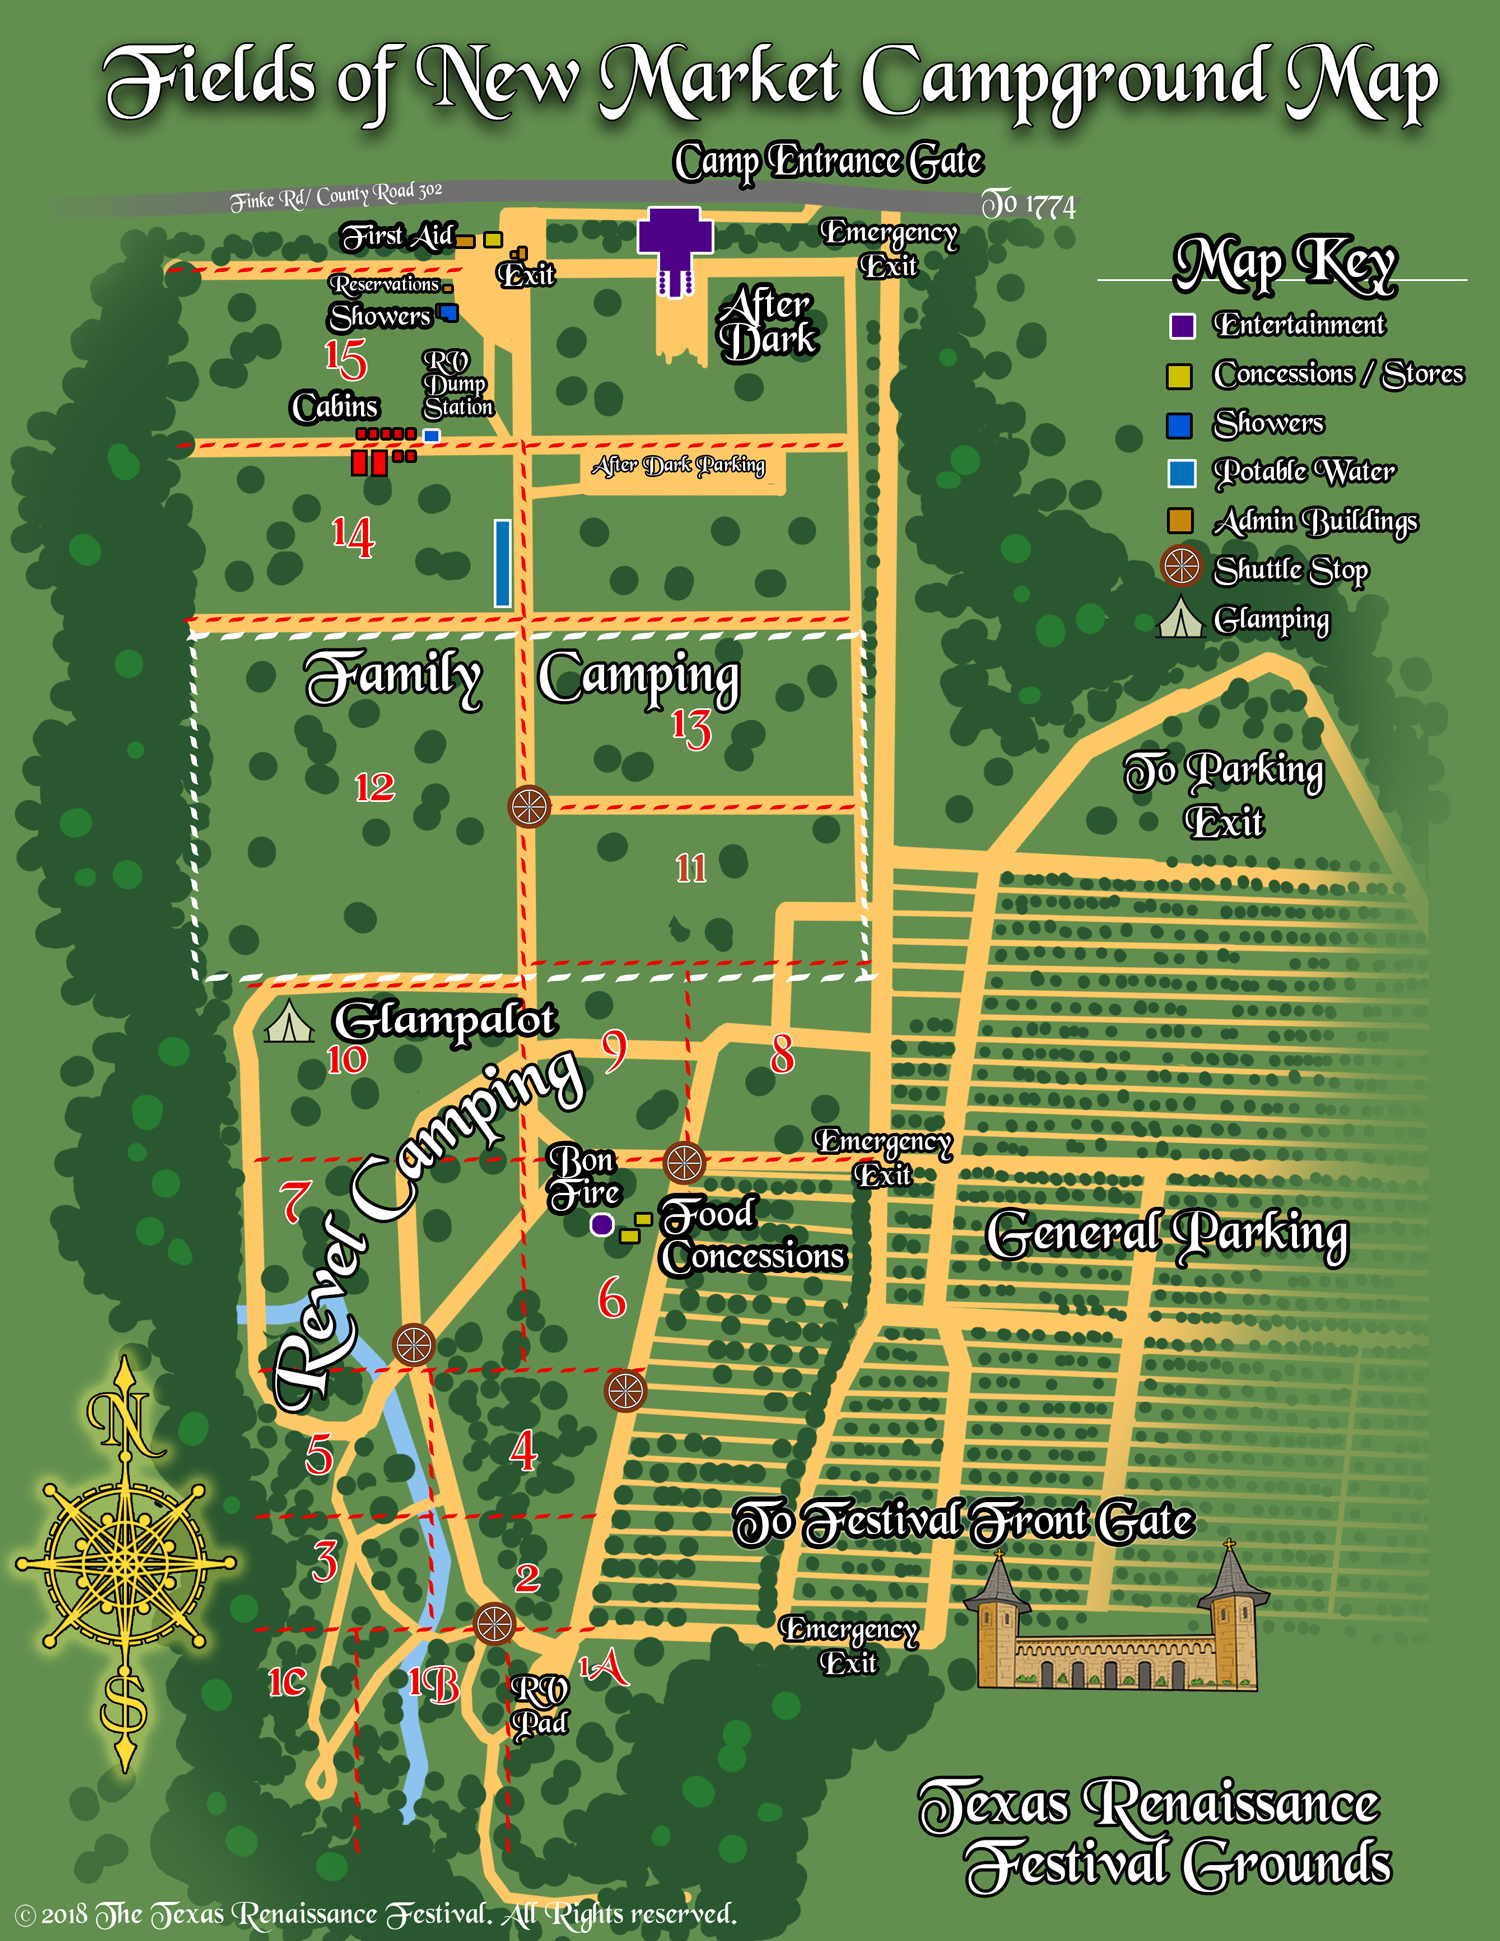 Texas Campground Map Camping | New Market Campground | Texas Renaissance Festival